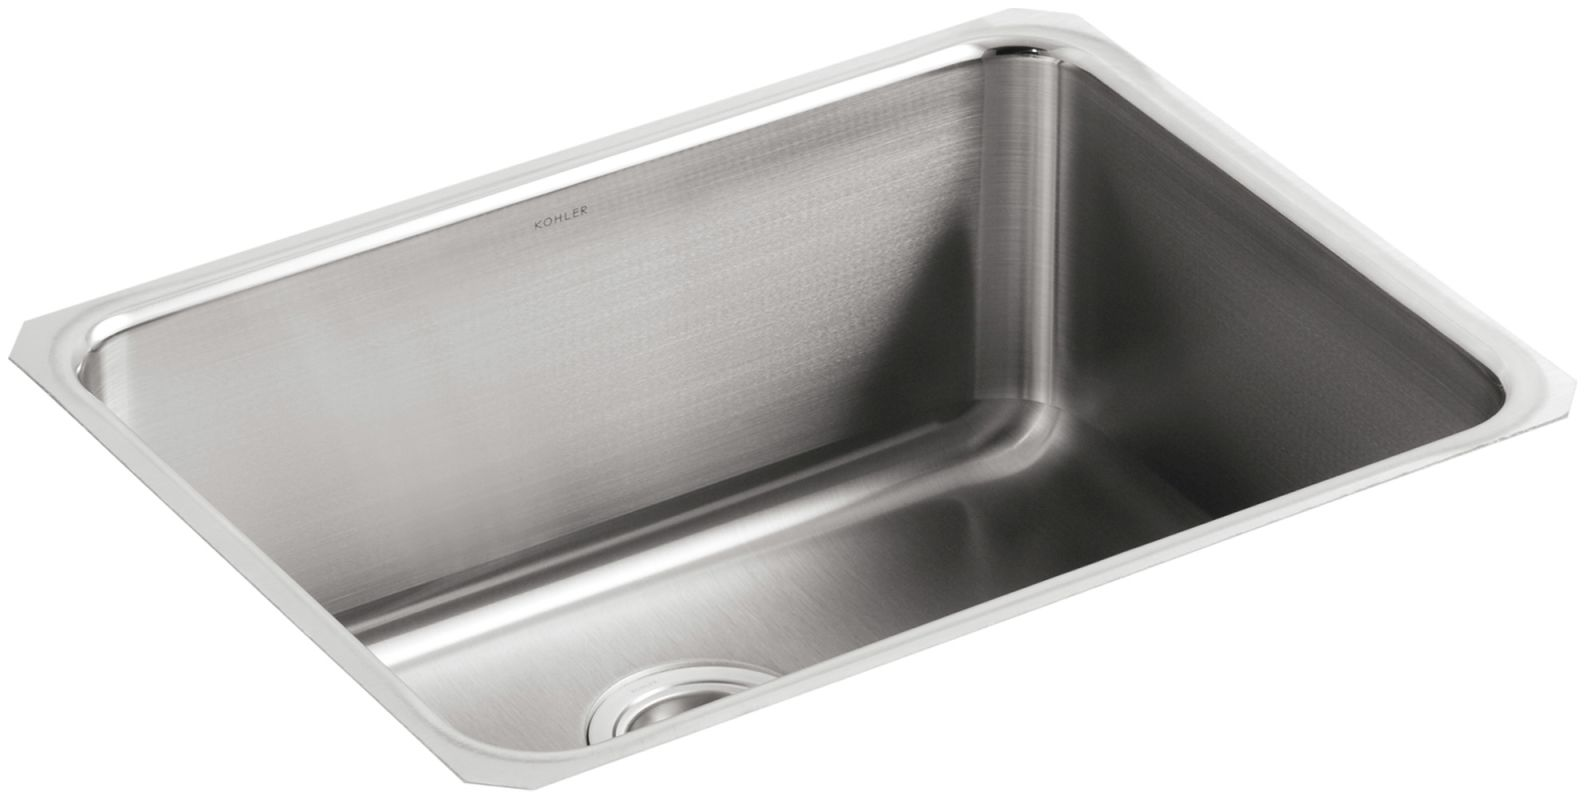 Kohler Ada Sinks : and ada compliant the kohler k 3325 does not have an ada drop in model ...